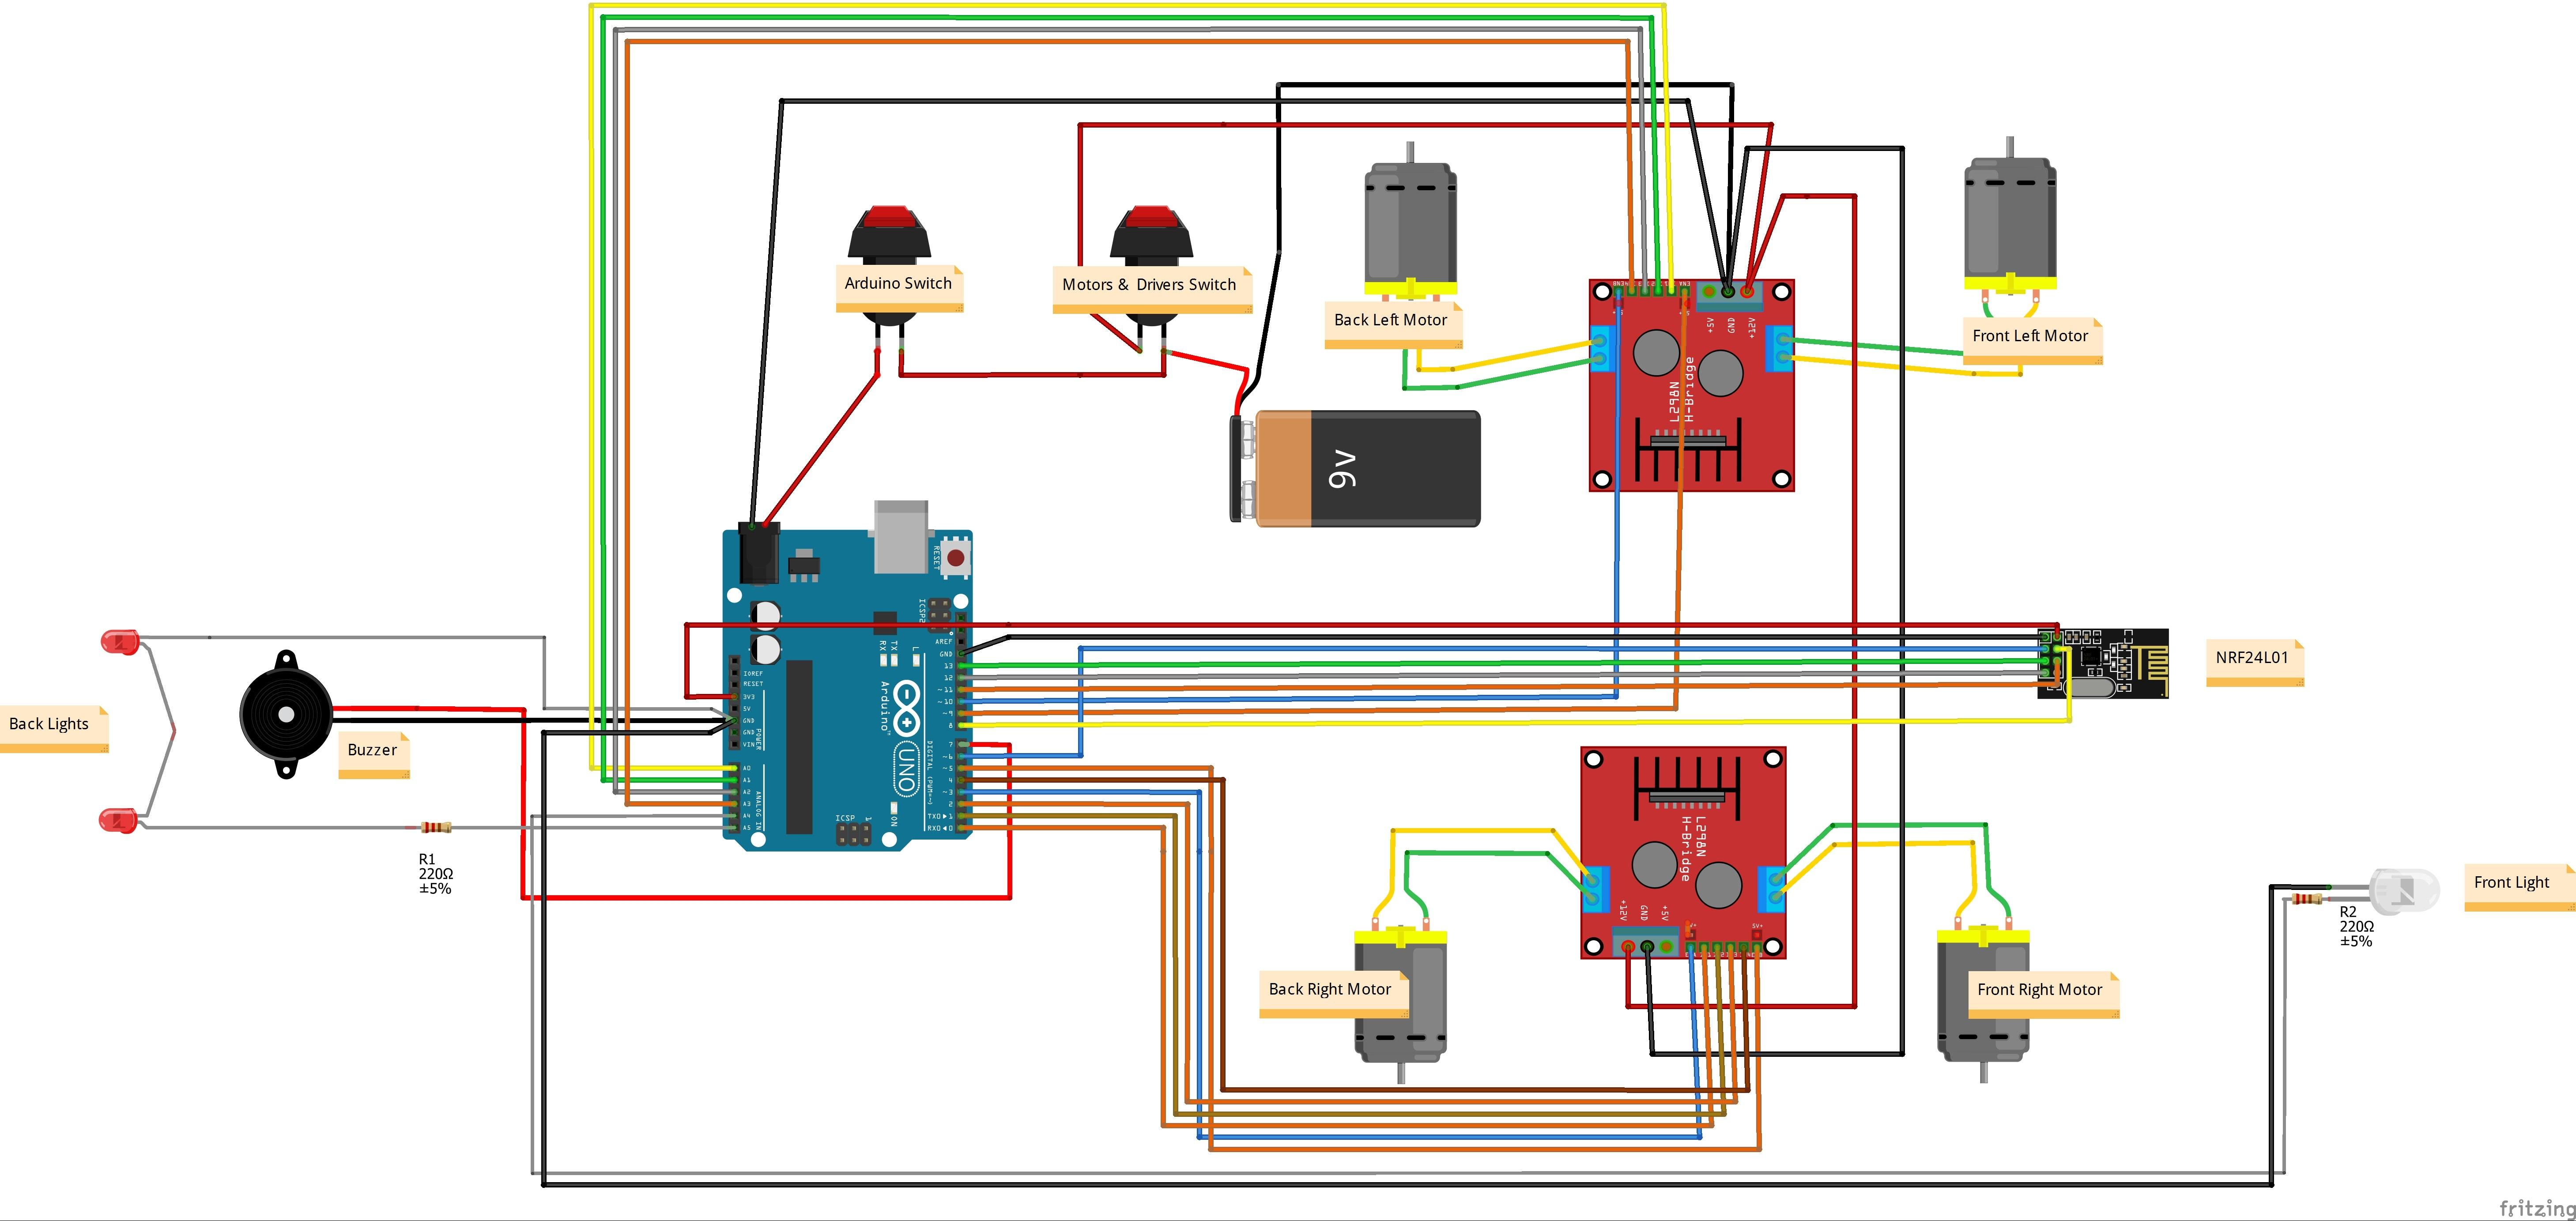 Whammy Hydraulic Wiring Diagram Vga Cable Wire Color Code